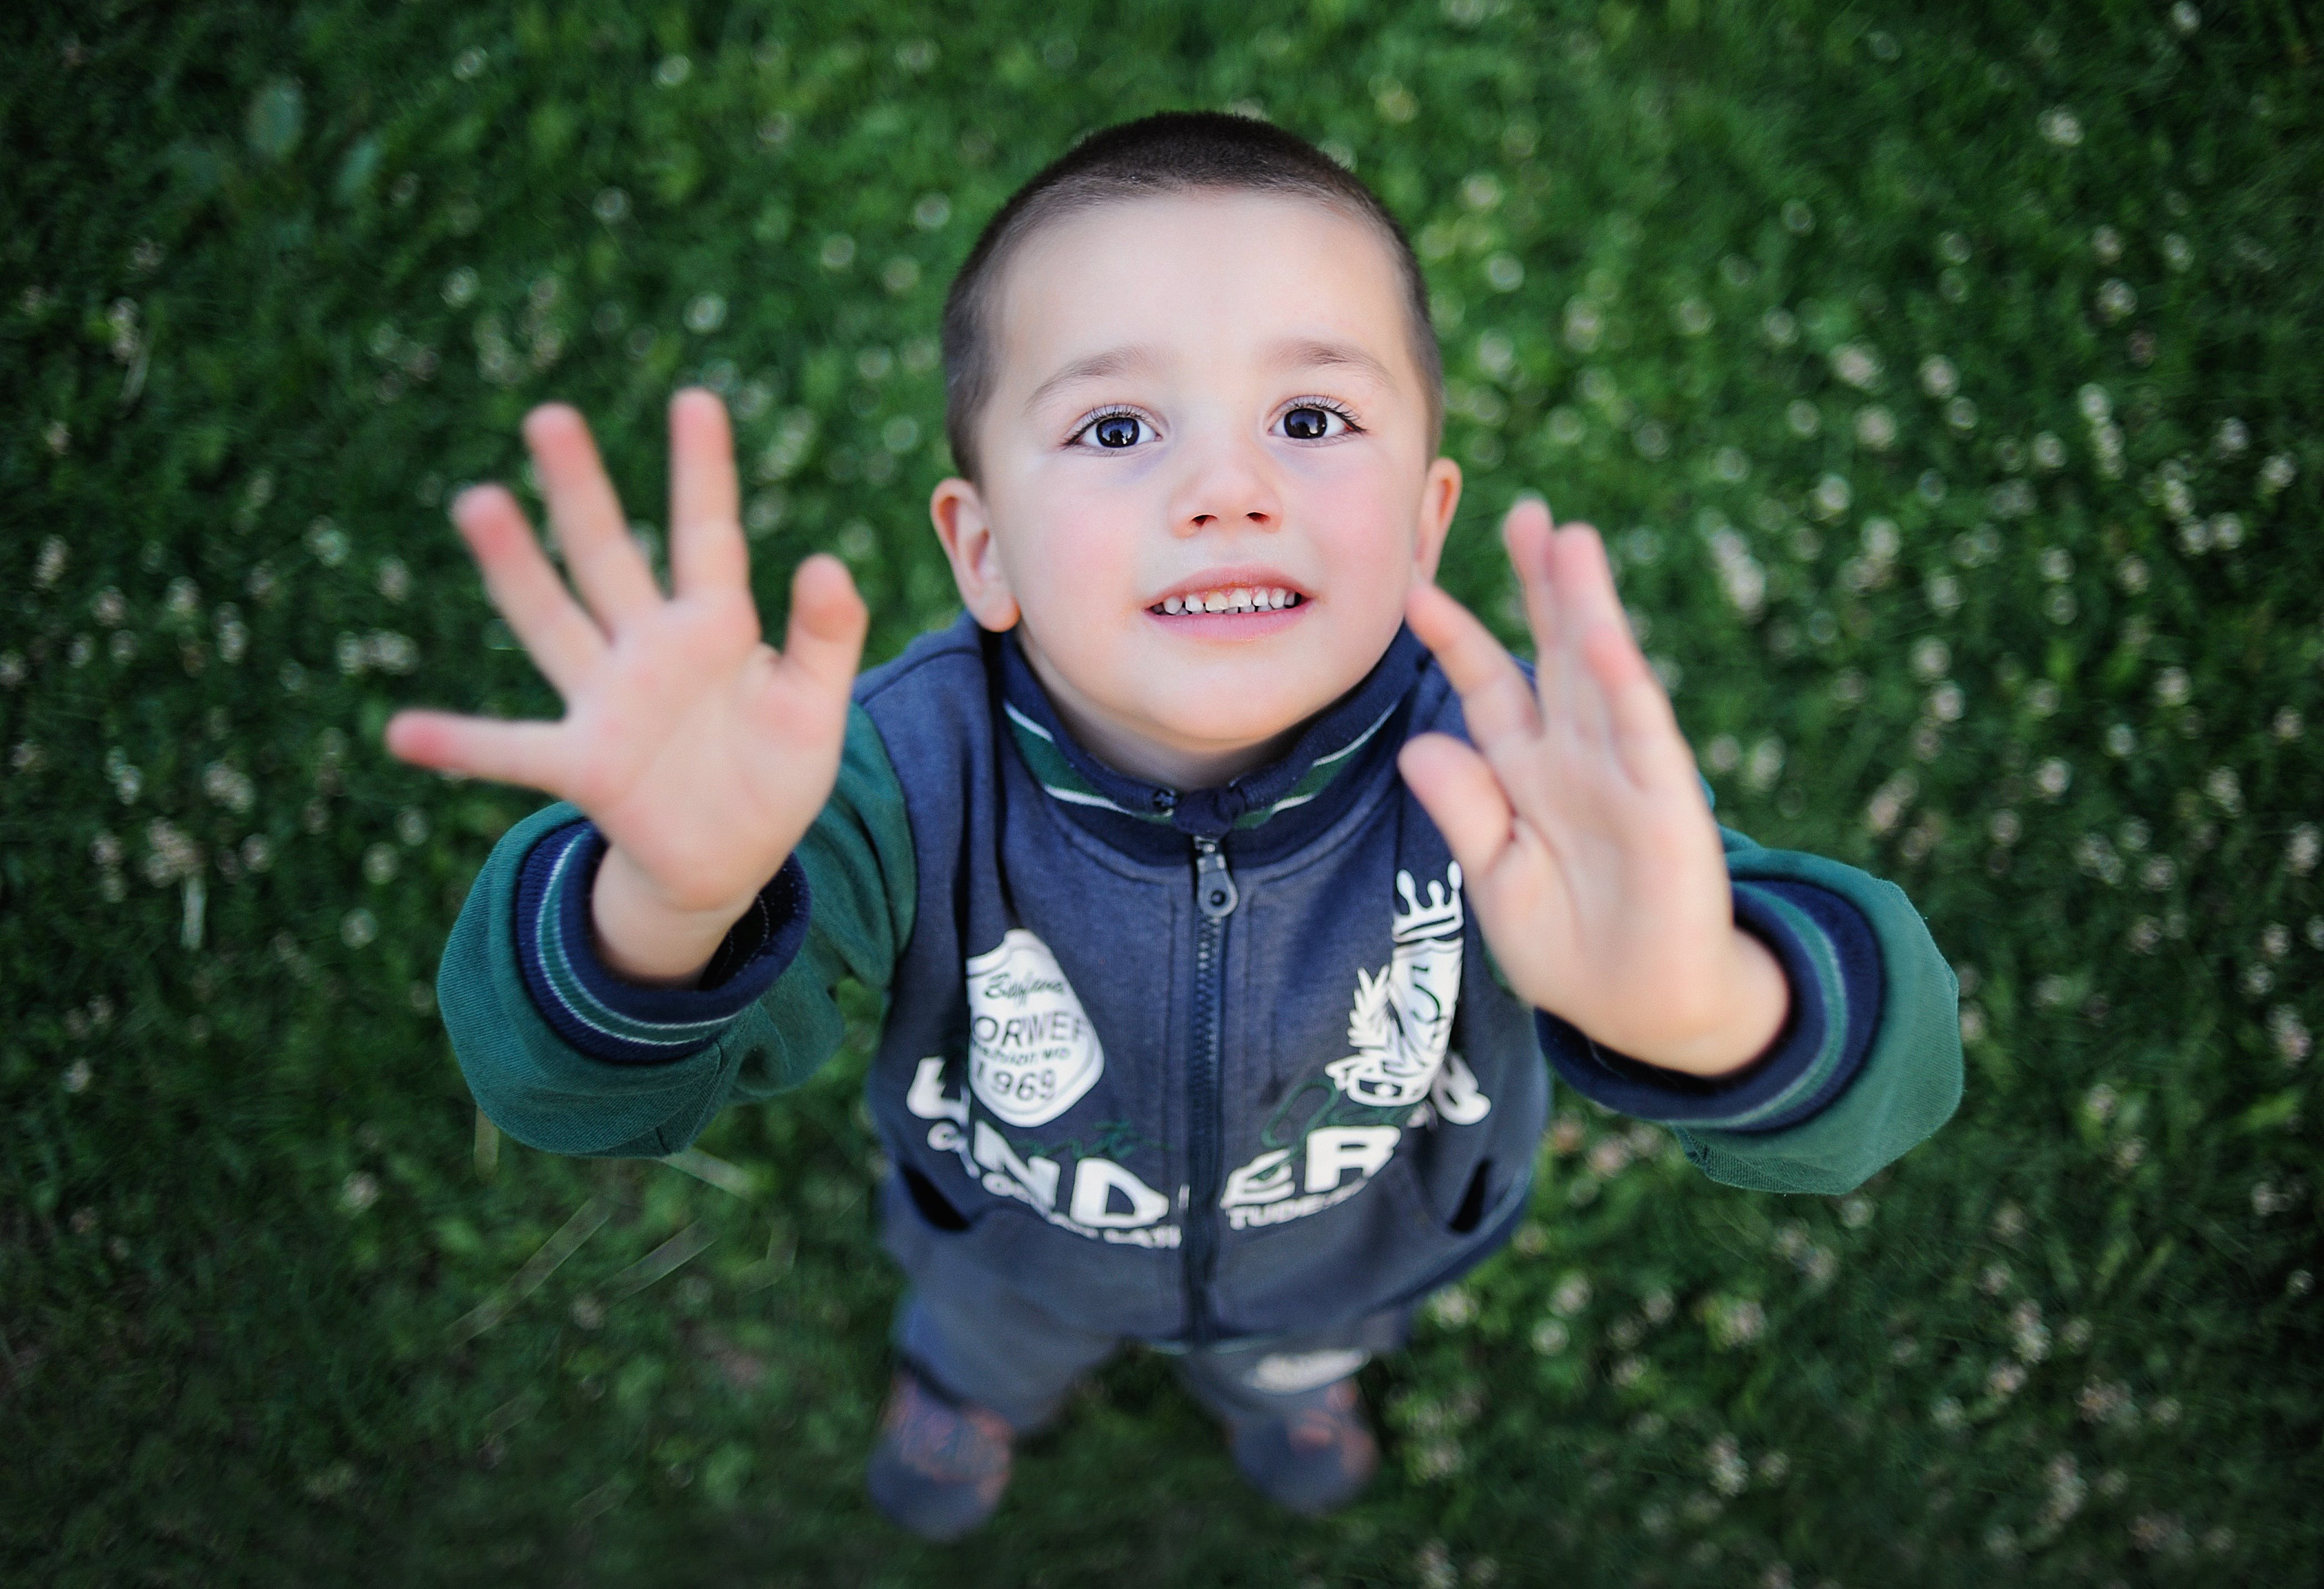 Portrait of Smiling Boy With Arms Outstretched